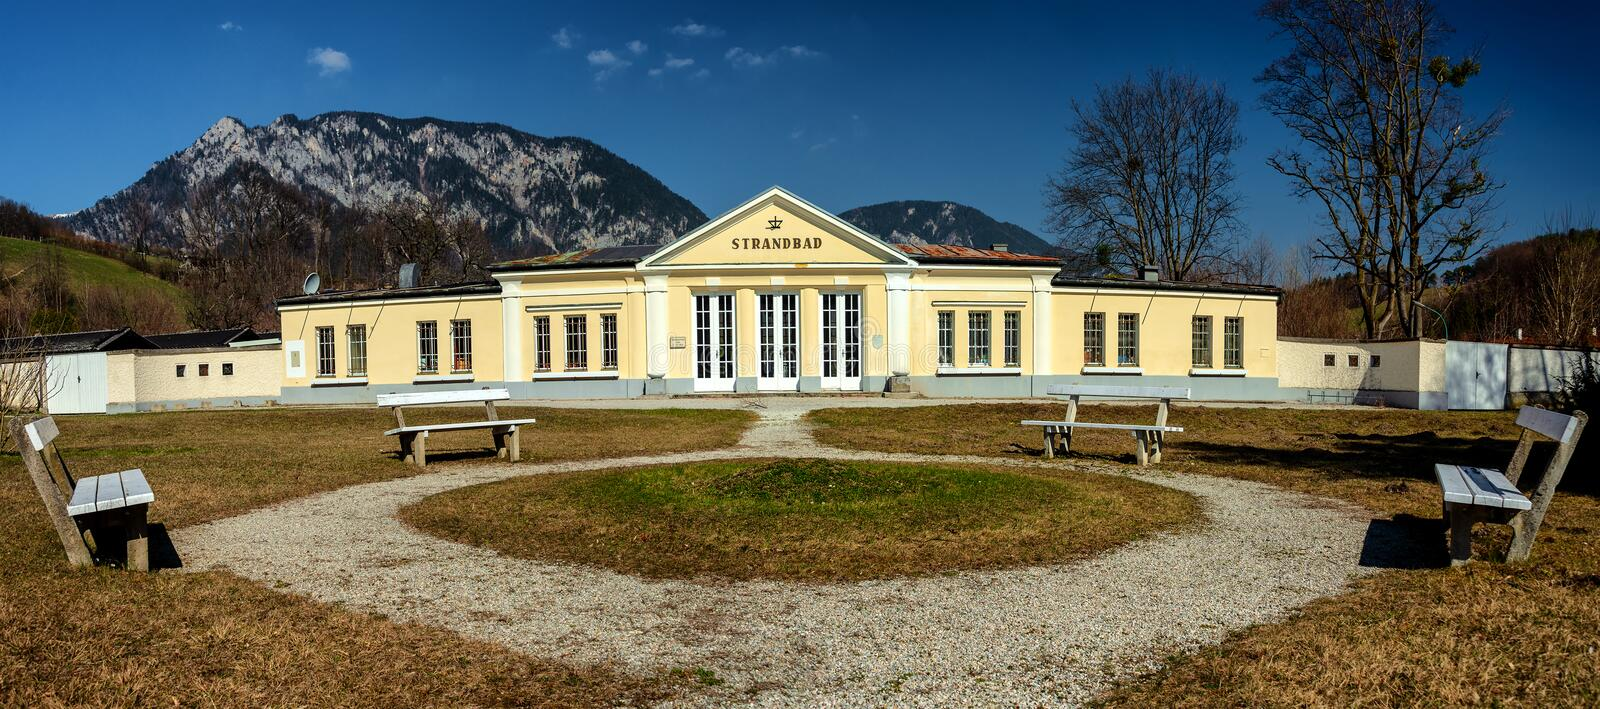 Health Resort, Spa in Edlach, Rax, Austria. Panoramic view of the famous Strandbad engl. Health Resort, Spa in Edlach, located stock photography